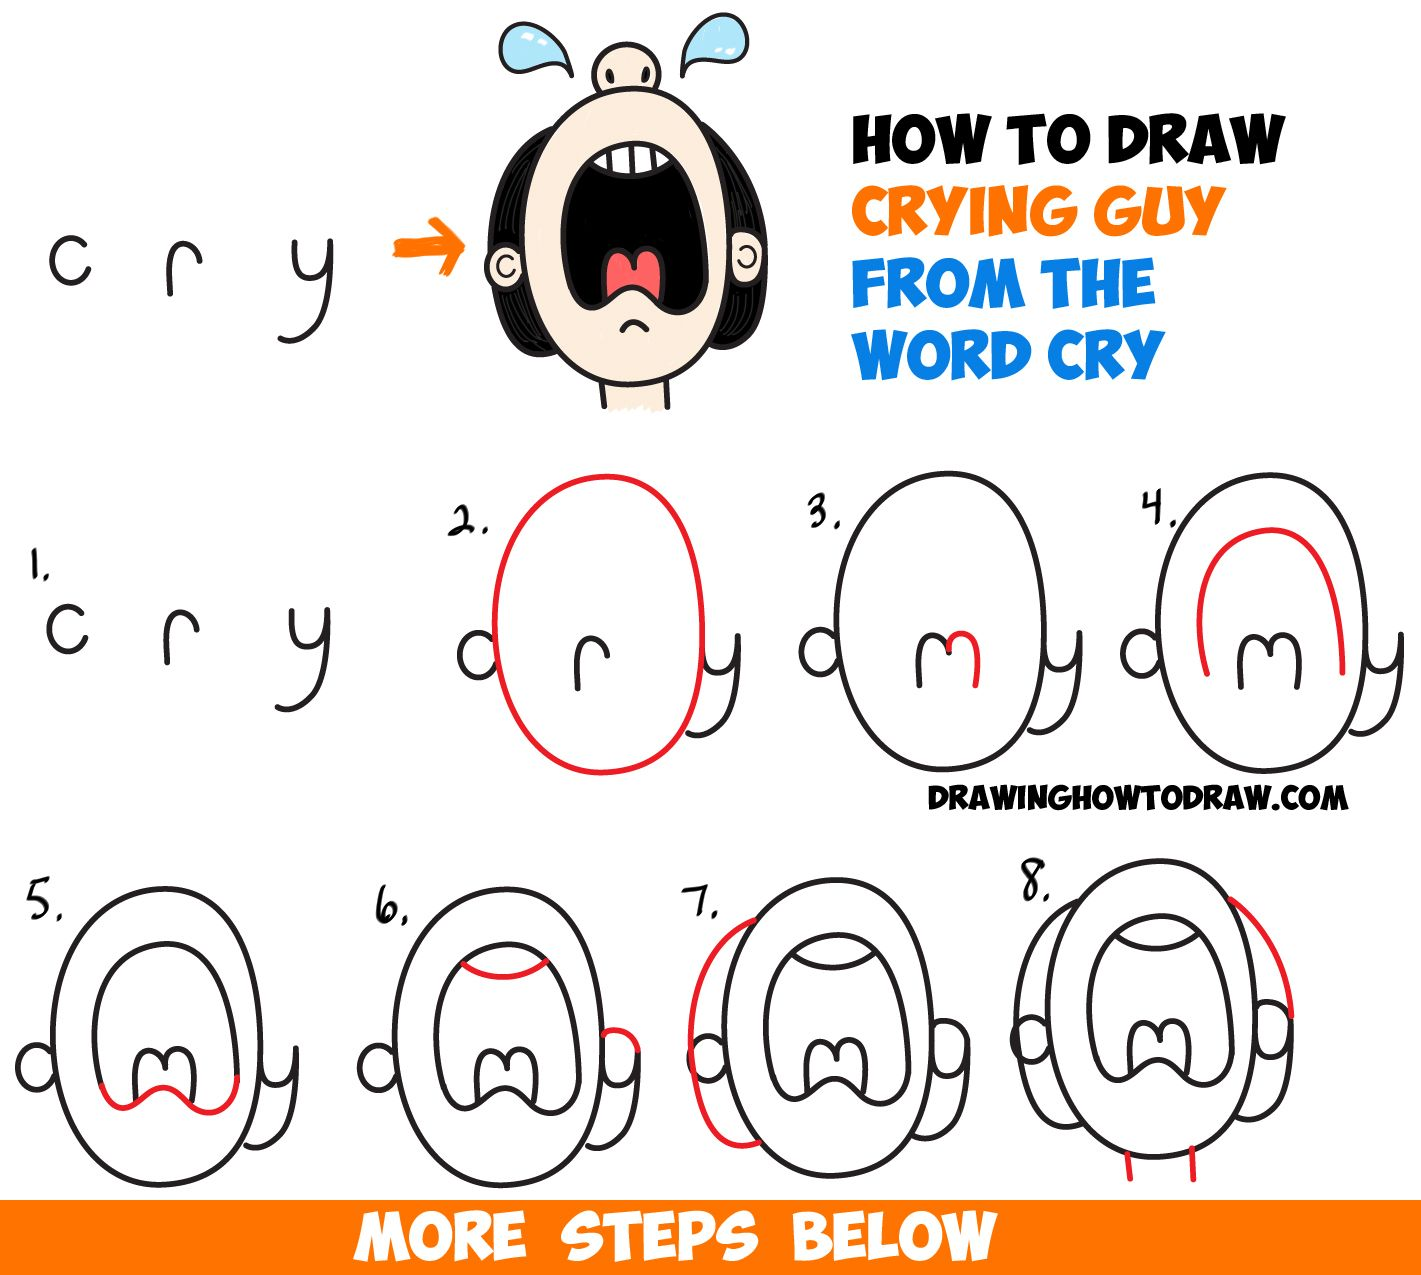 How To Draw Cartoon Crying Person From The Word Cry Easy Step By Step Drawing Tutorial For Kids How To Draw Step By Step Drawing Tutorials Word Drawings Cartoon